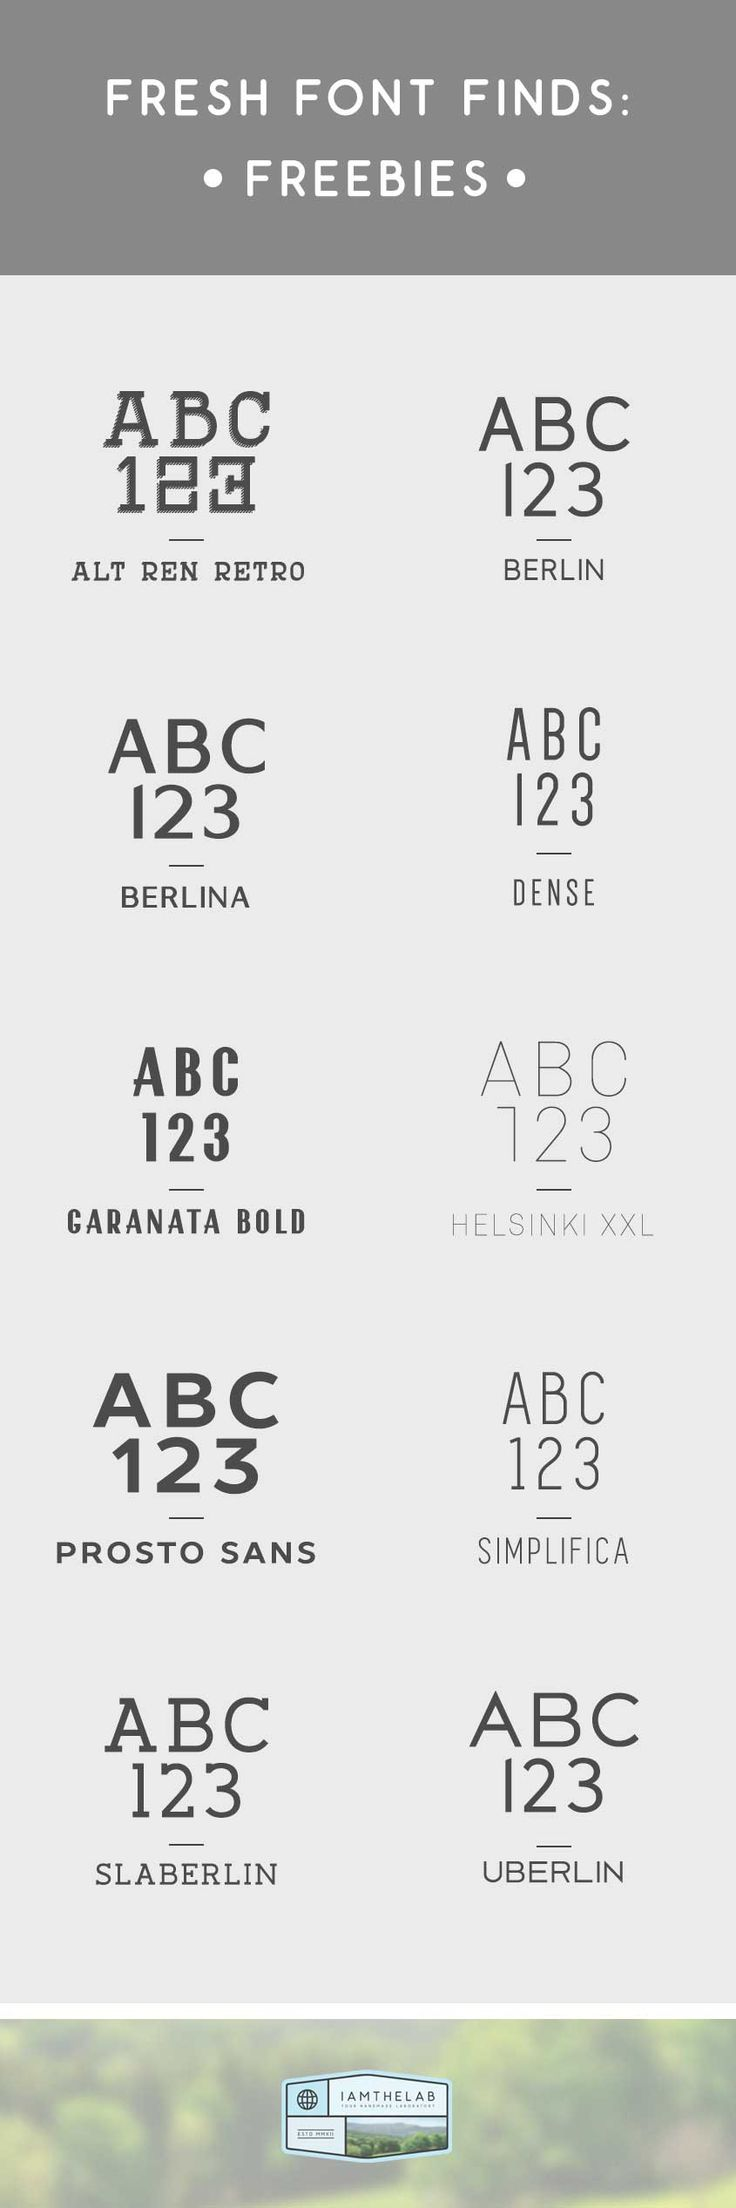 Free fonts on IAMTHELAB